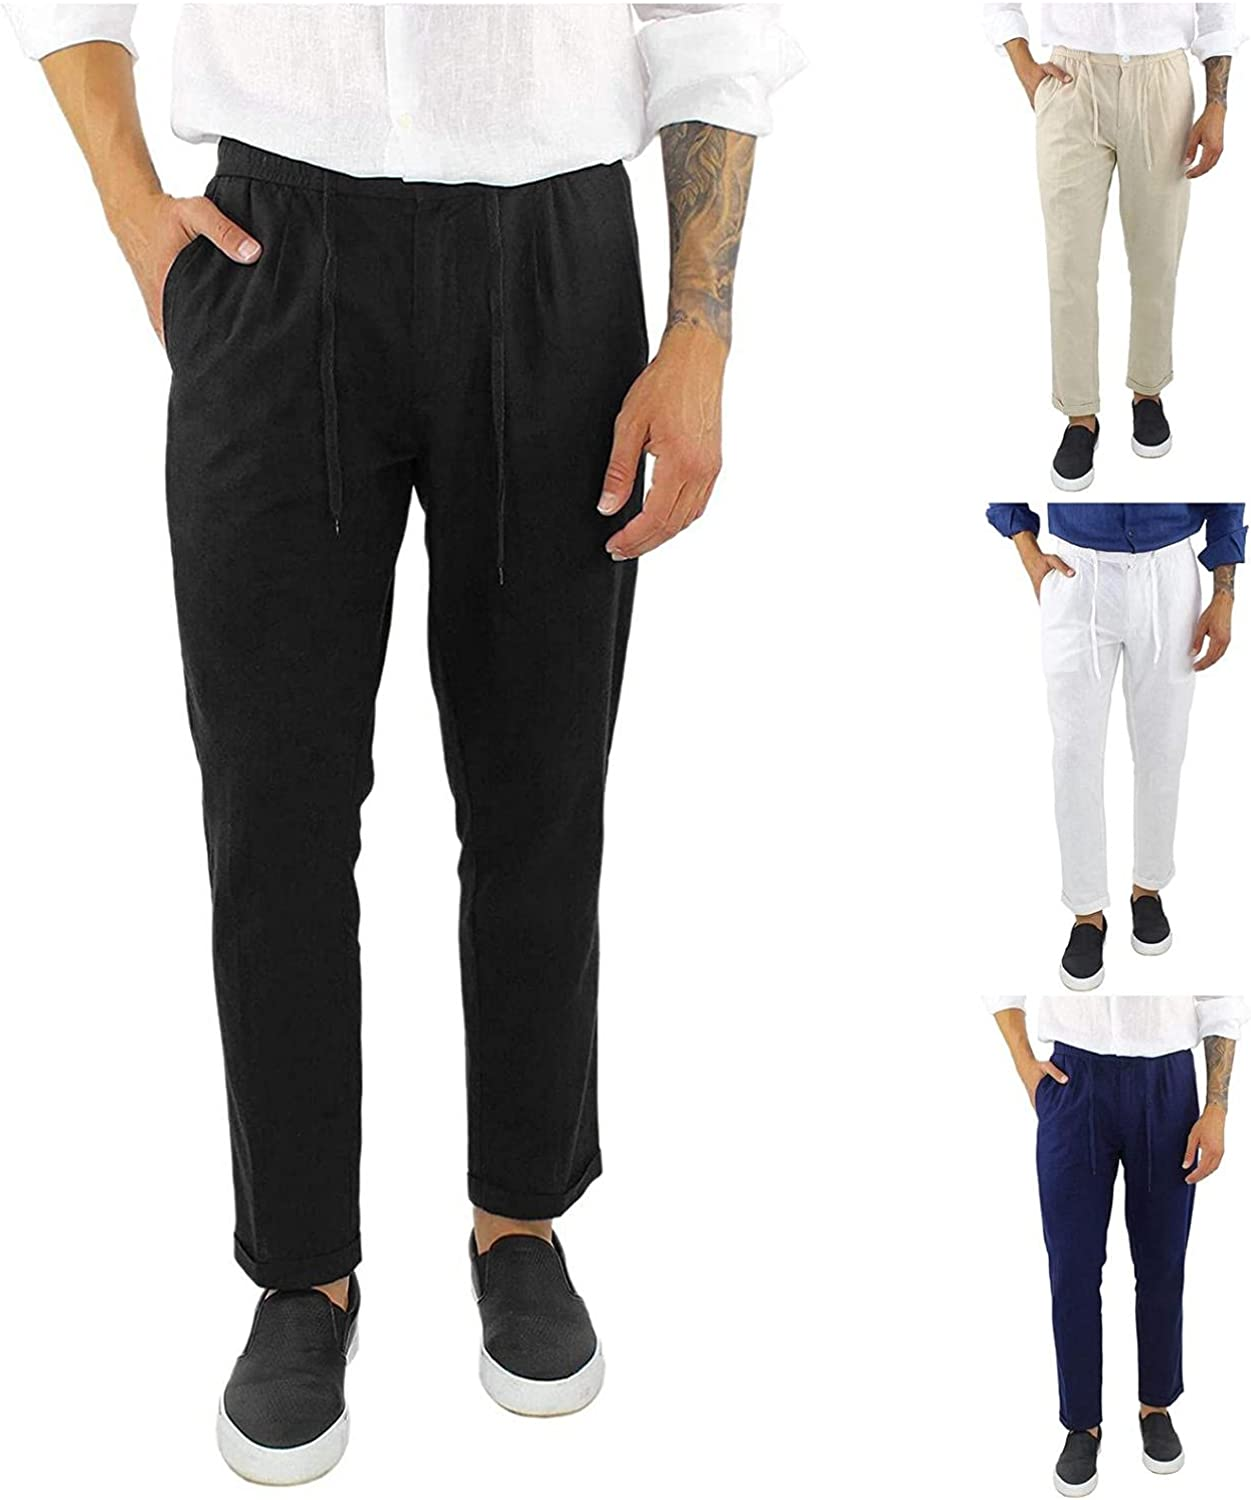 NREALY Mens Pants Cotton Linen Drawstring Casual Solid Color Folded Hem Trousers